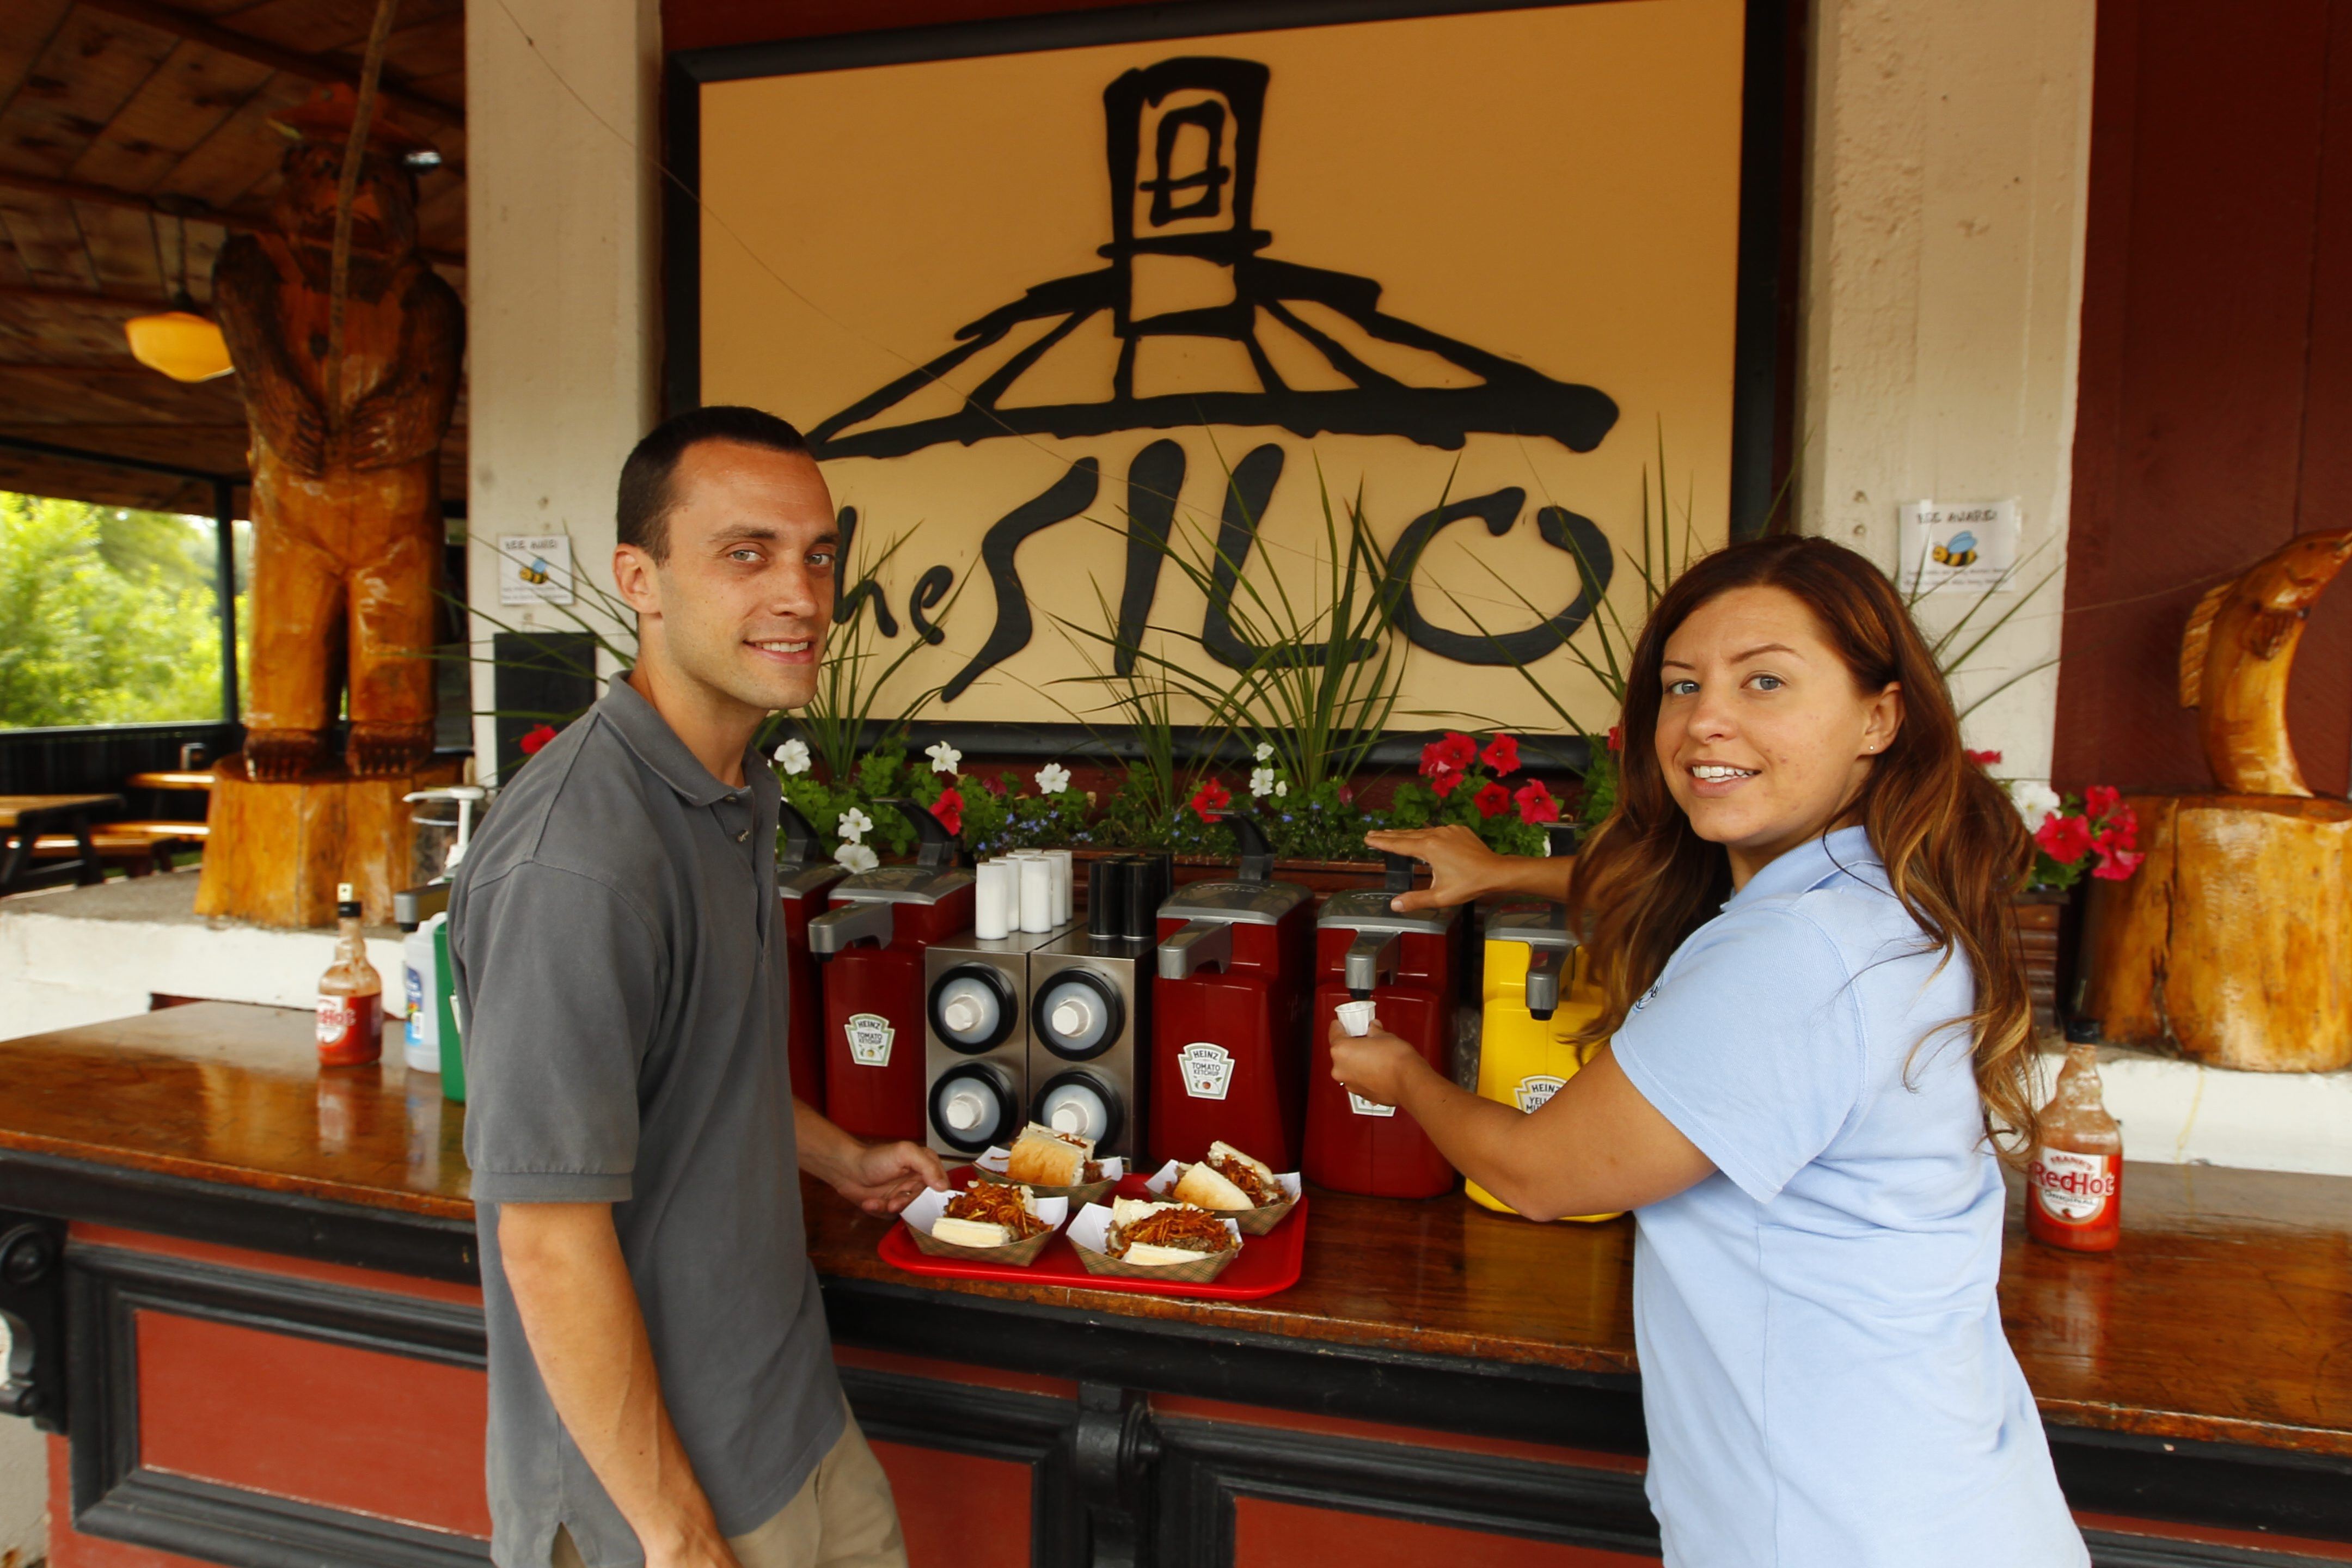 Chris and Alicia Tepas conduct tour of Lewiston and tastings at popular restaurants for small groups in the village.